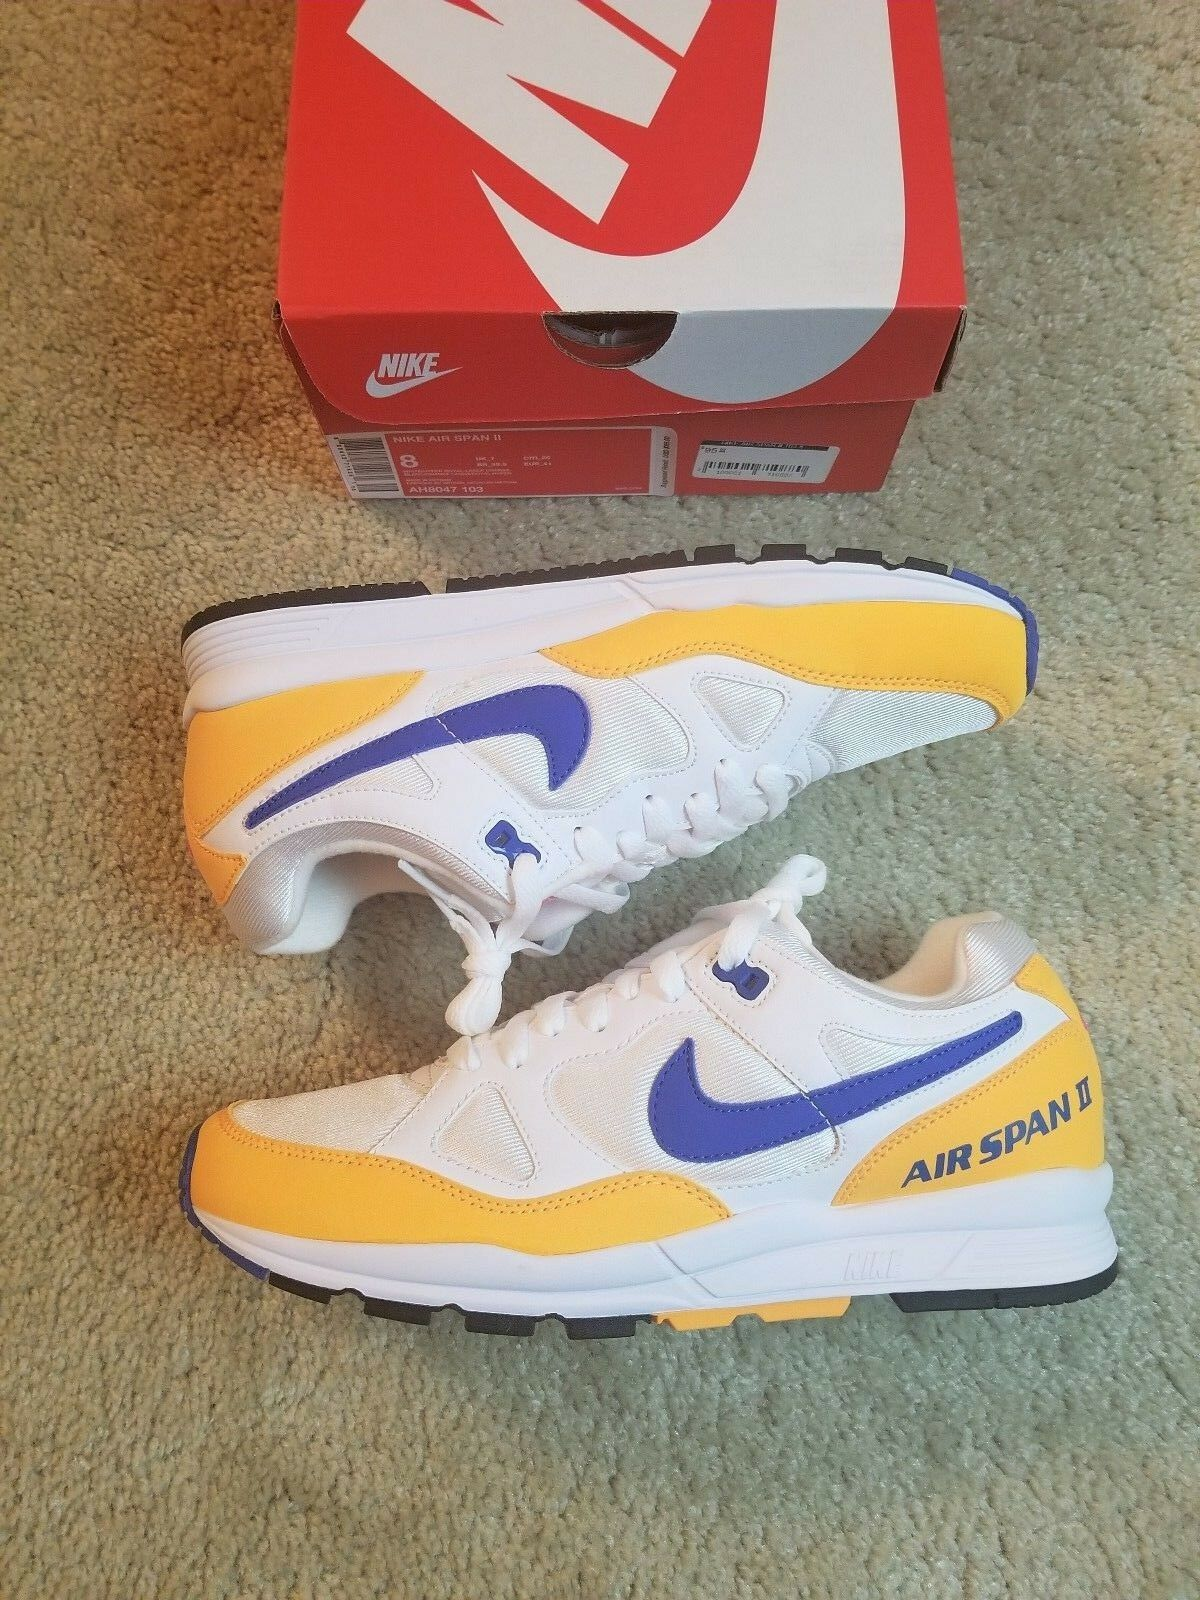 NEW Men's Nike Air Span II Athletic Fashion Casual Sneakers AH8047-103 SIZE 8